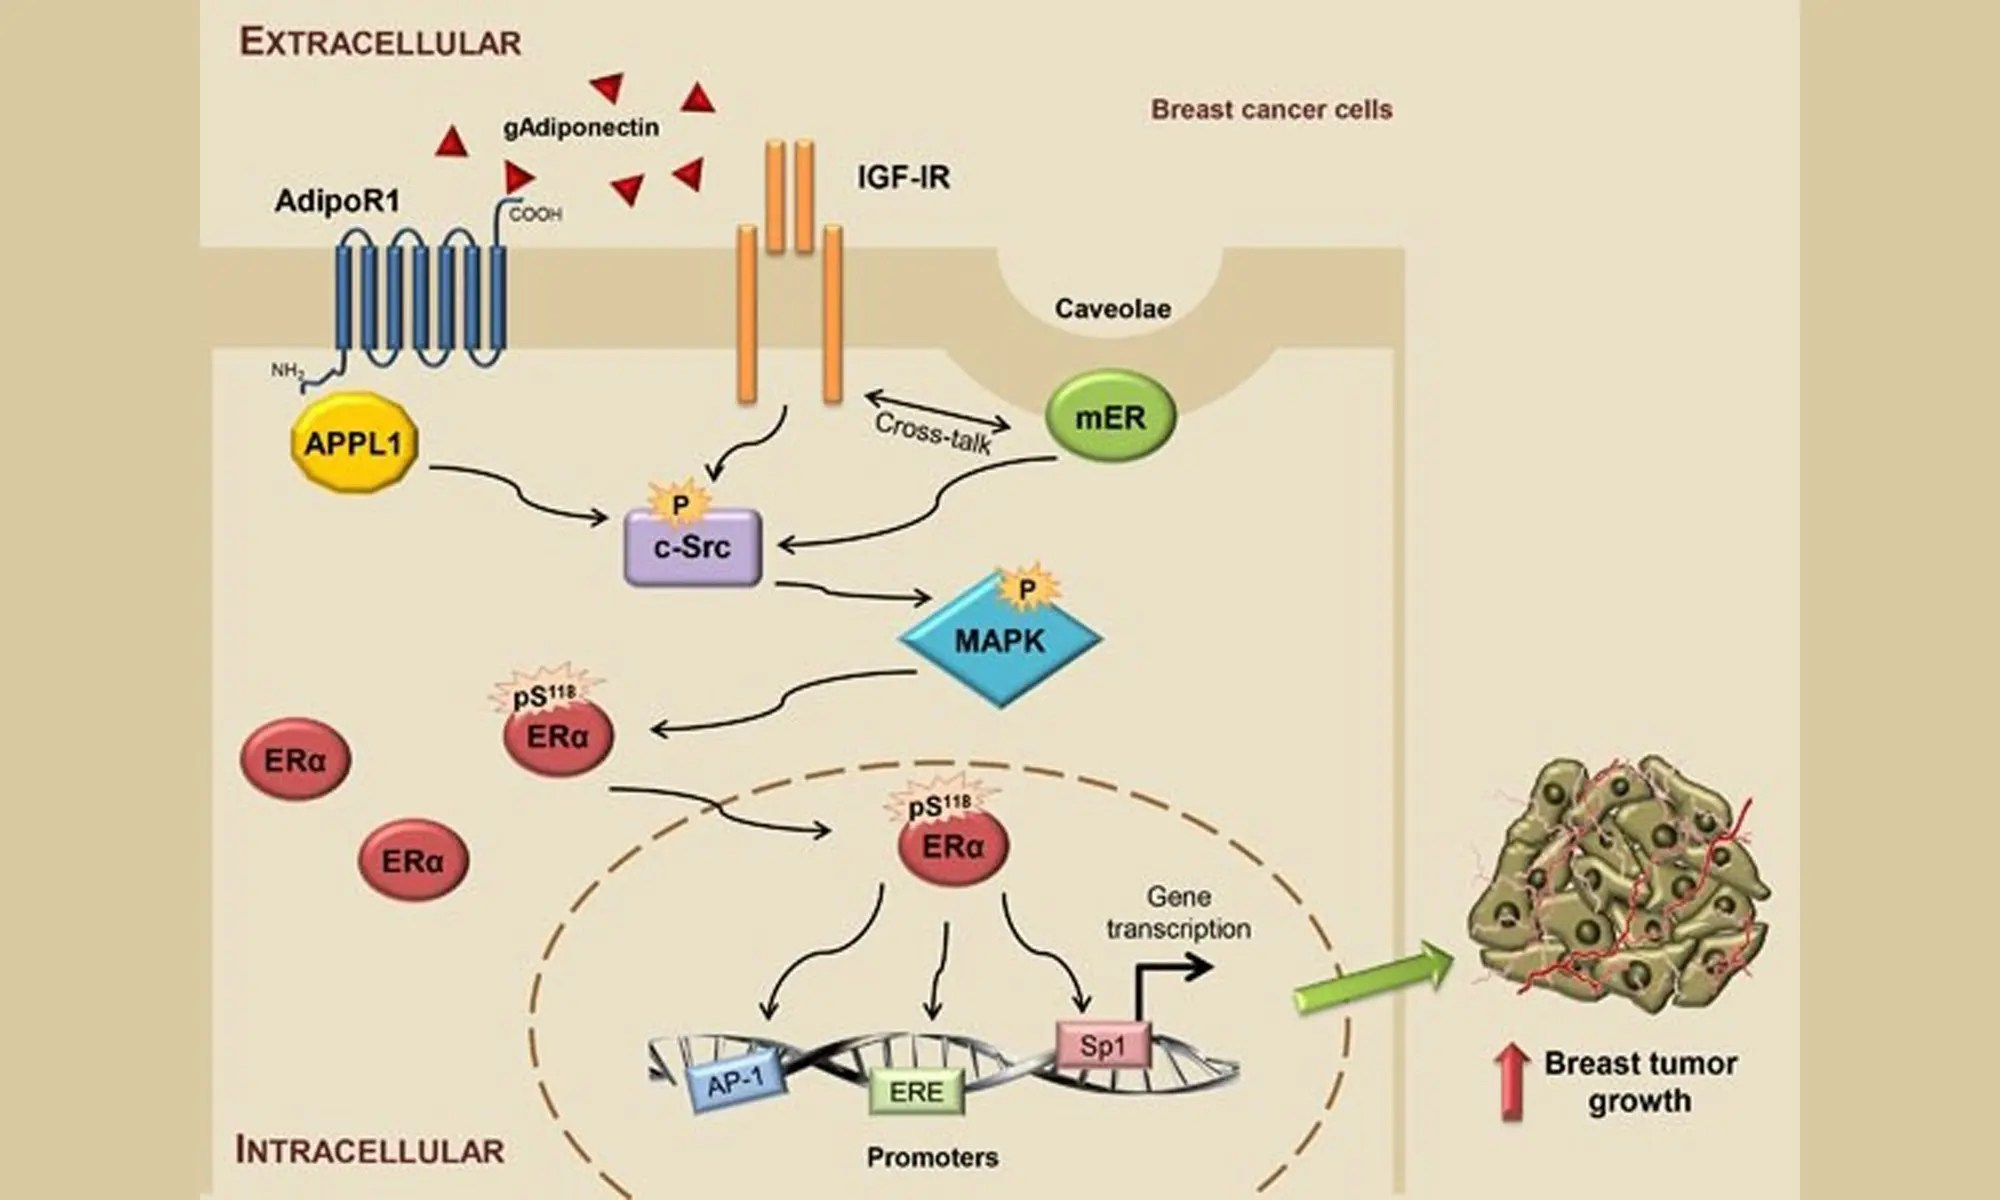 ERα's role in DES-induced breast cancer cell proliferation